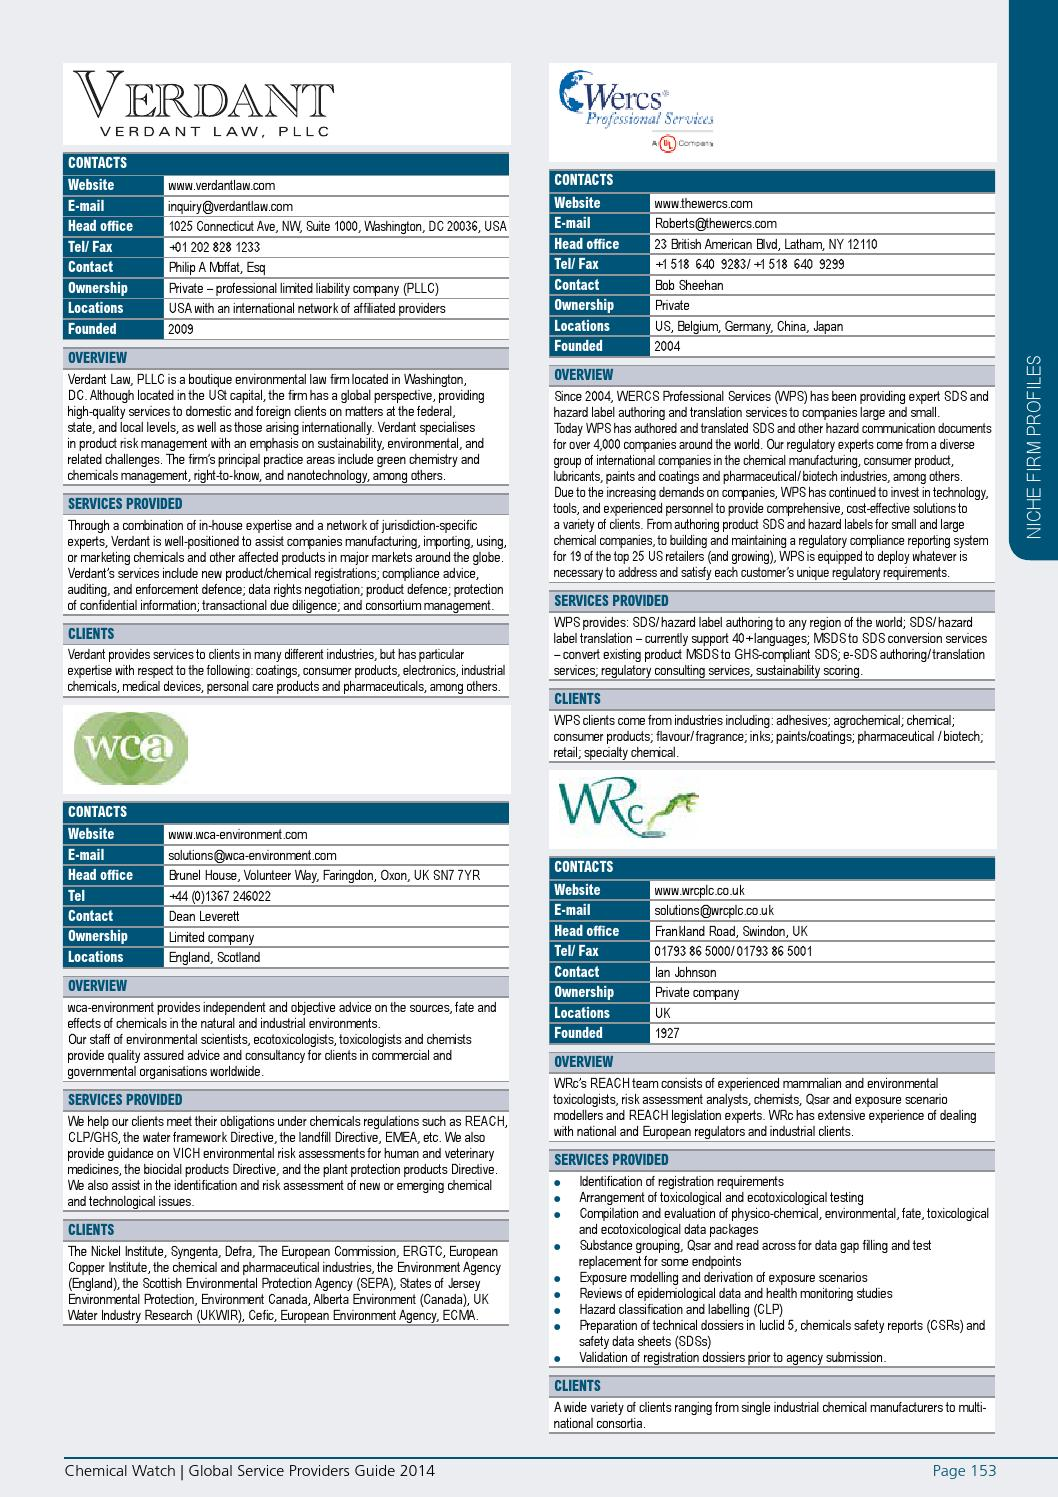 Global Service Providers Guide 2014 by Chemical Watch - issuu